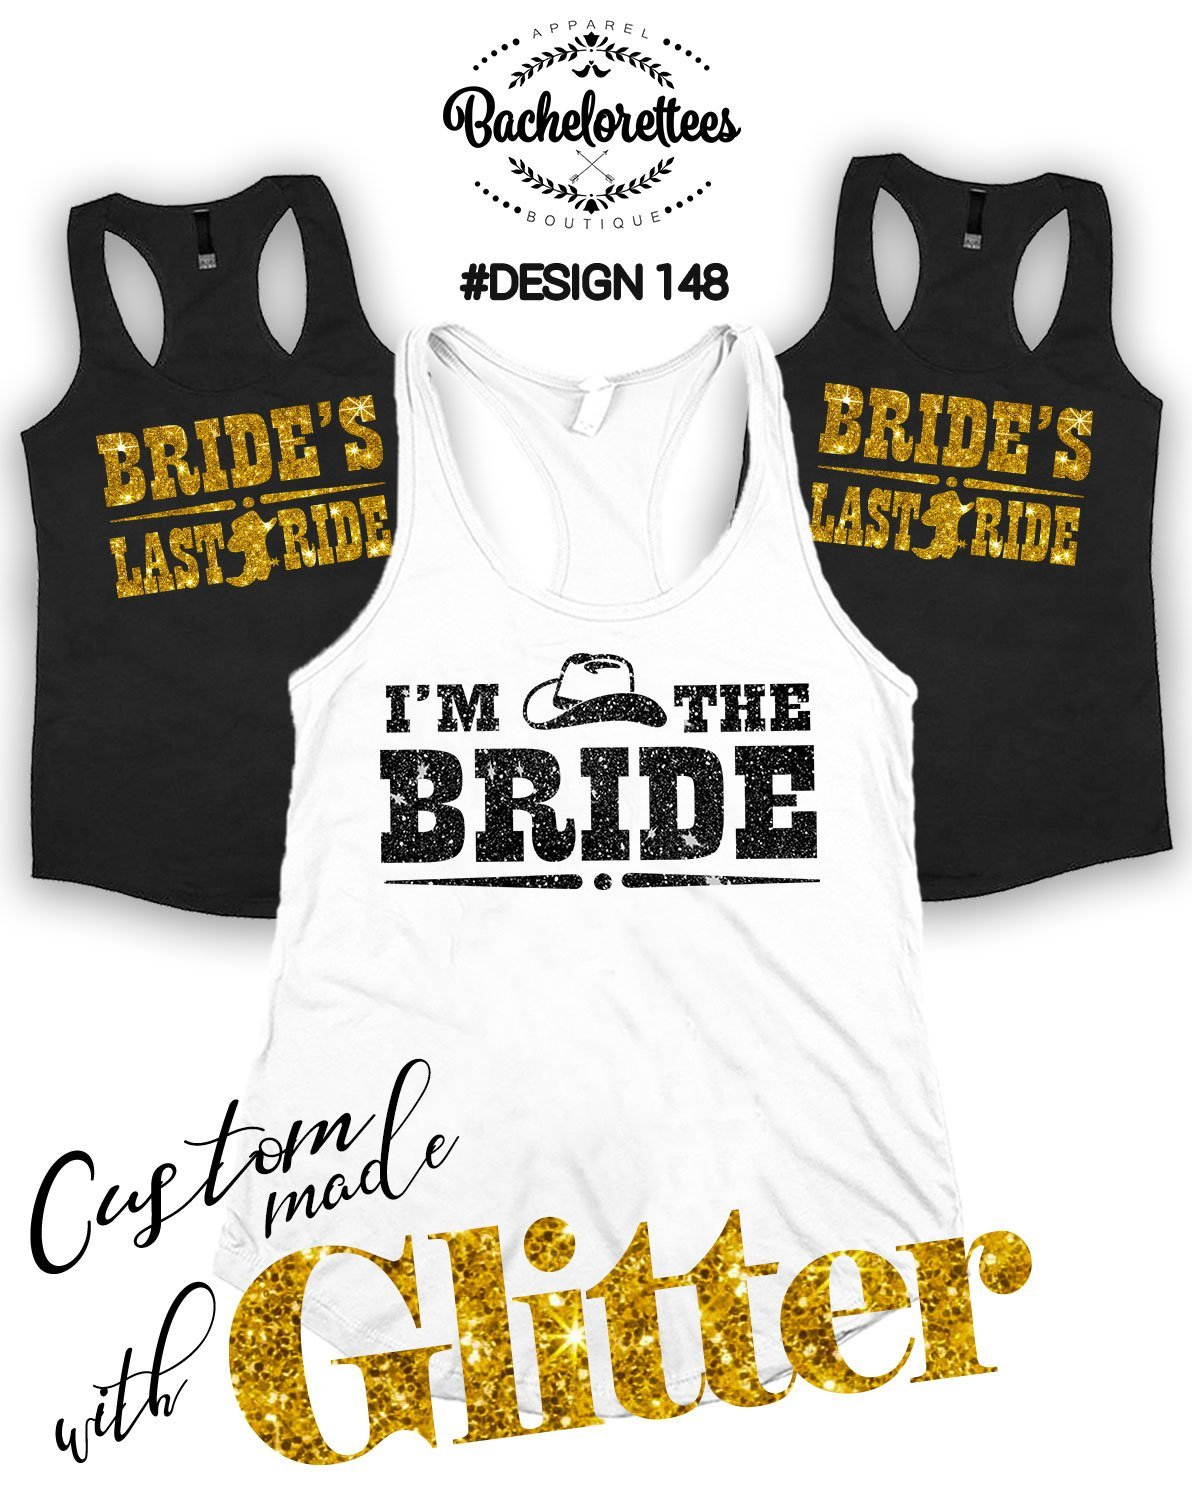 Bride's Last Ride Tank Tops - Bachelorette Party Shirts - Wedding Tanks - Bachelorette Party Tee Shirt - Gold Bridesmaid Shirts